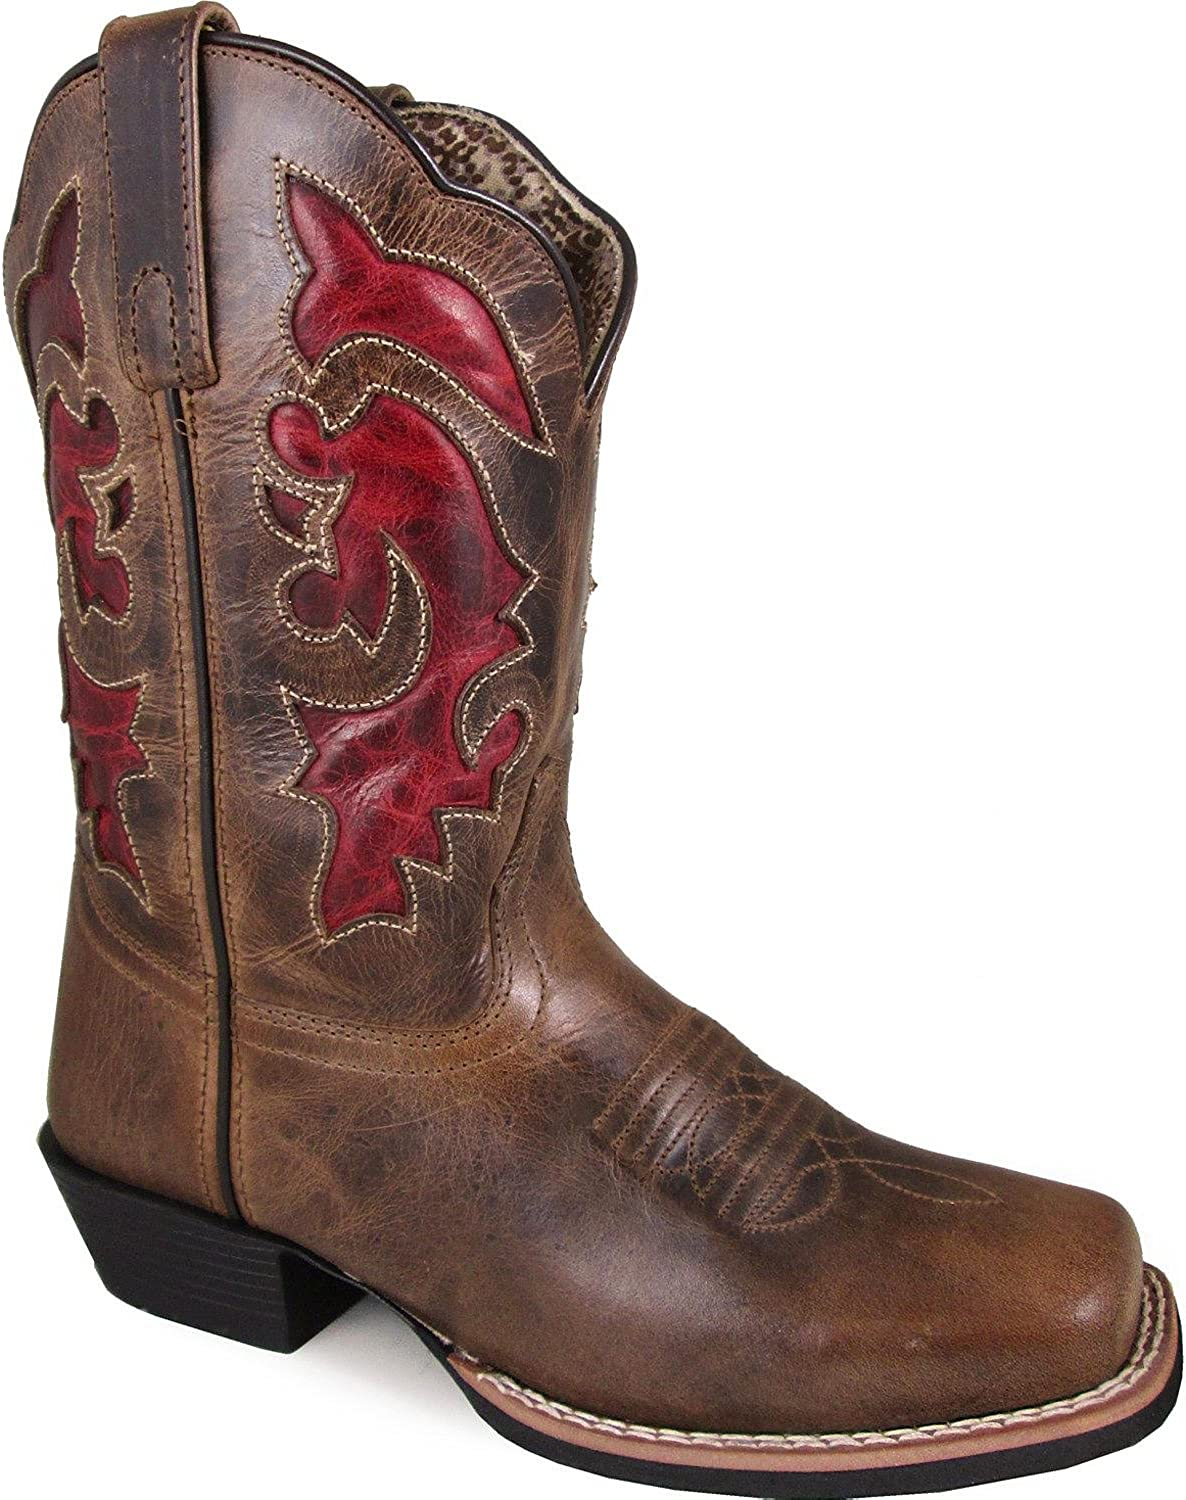 Smoky Mountain Women's Claire Pull On Stitched Design Square Toe Brown Waxed